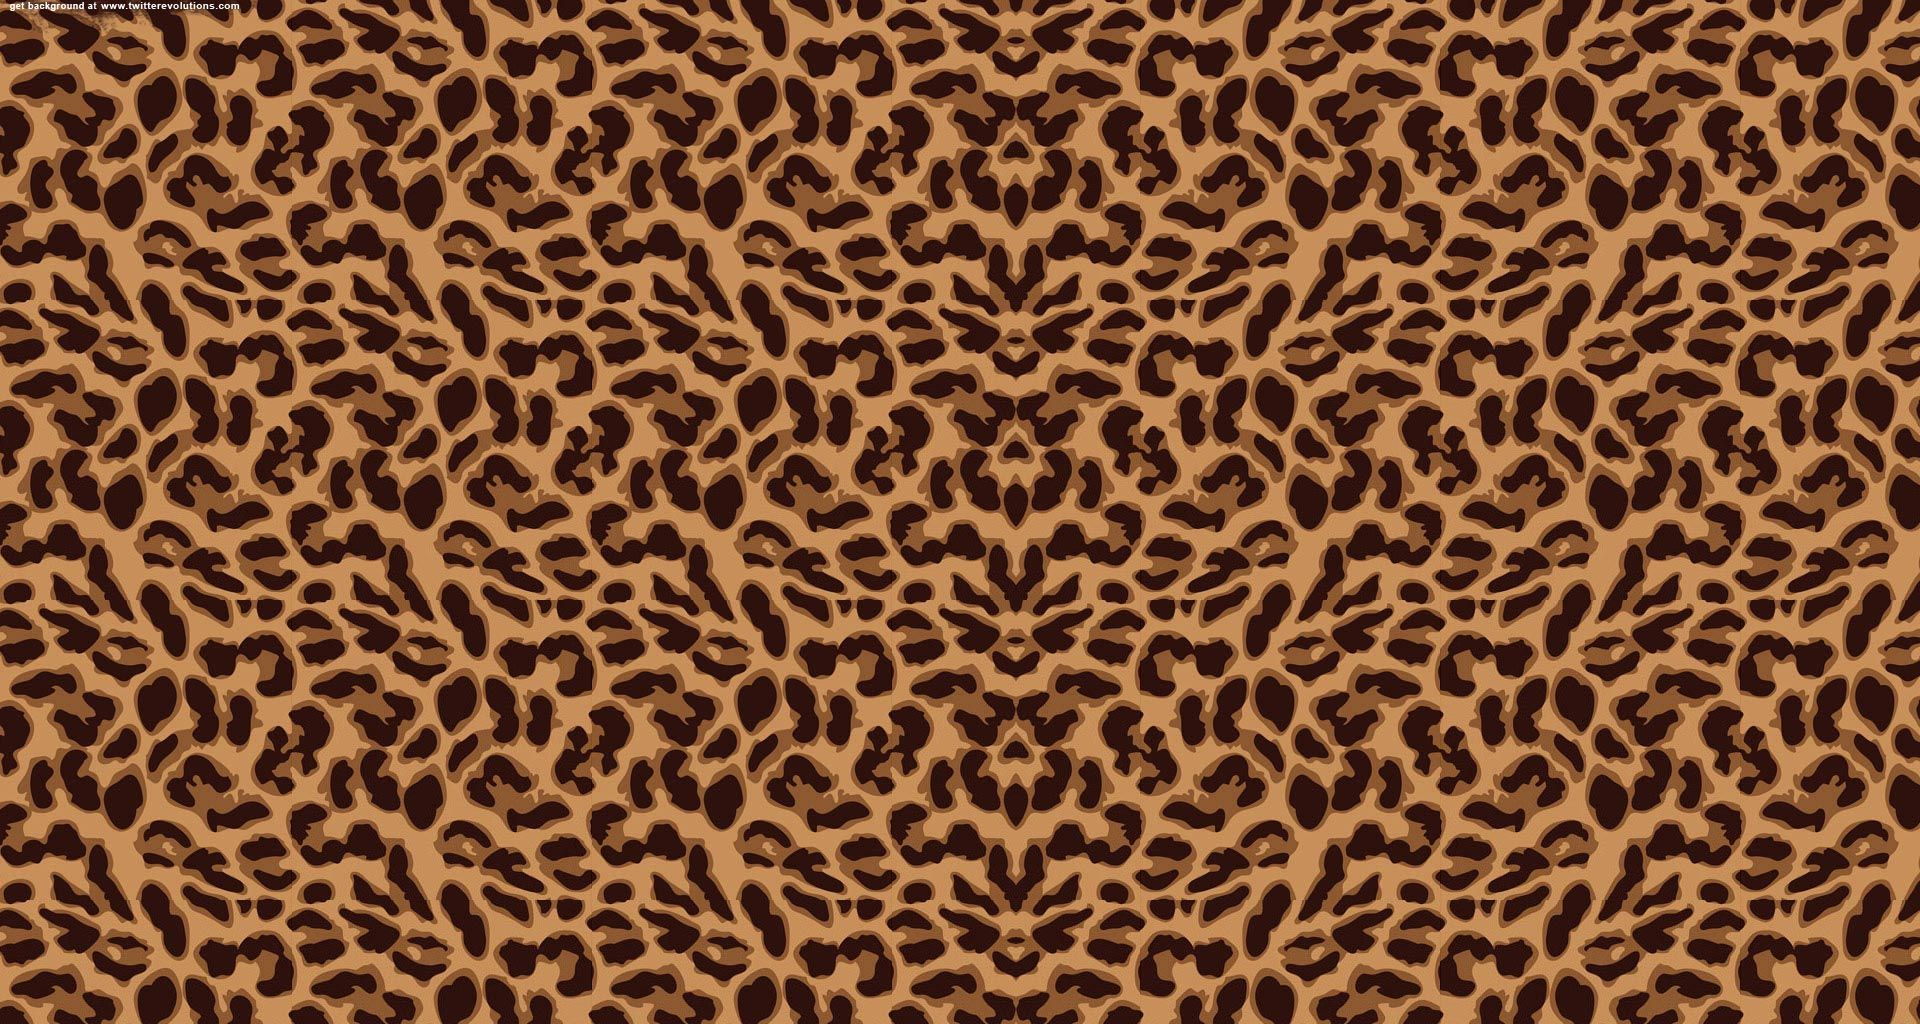 Zebra Print Twitter Background Leopard Print Wallpaper Zebra Print Wallpaper Print Twitter